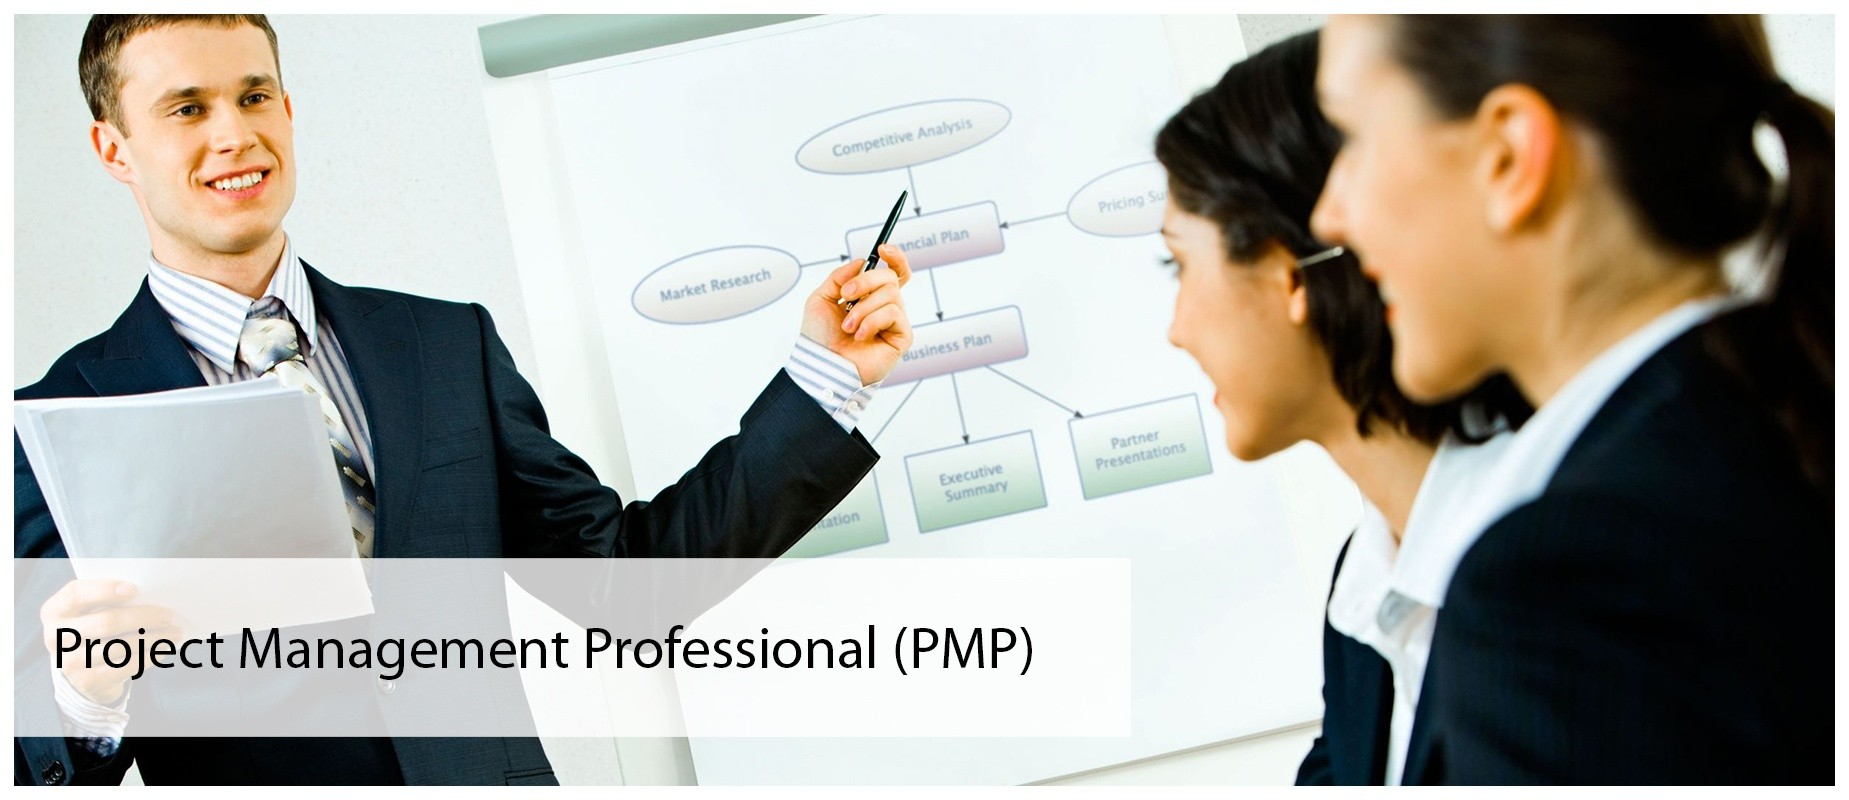 What Is The Difference Between Pm And Pmp Quora